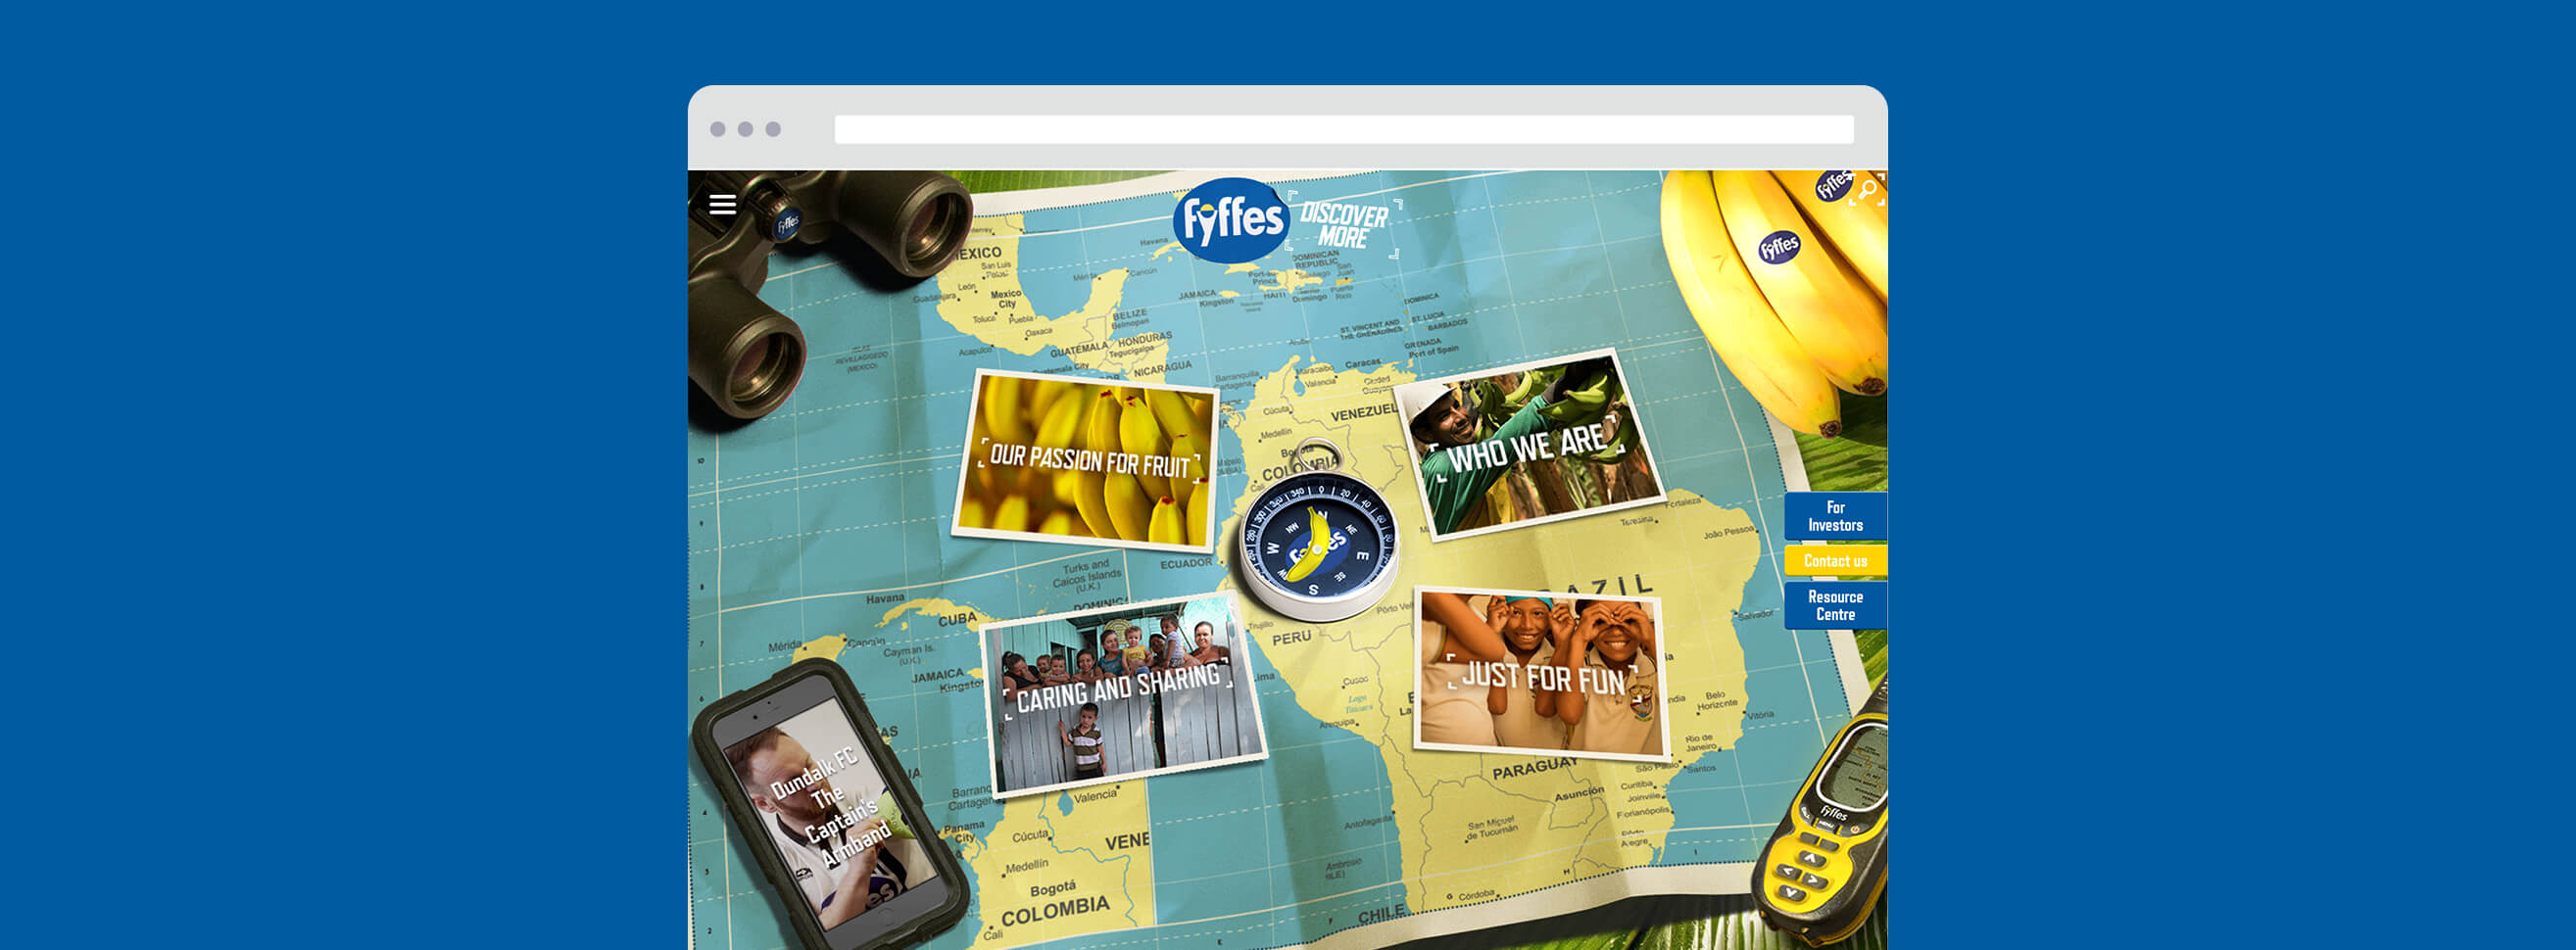 00 - Fyffes  Portfolio LayoutArtboard 40 copy